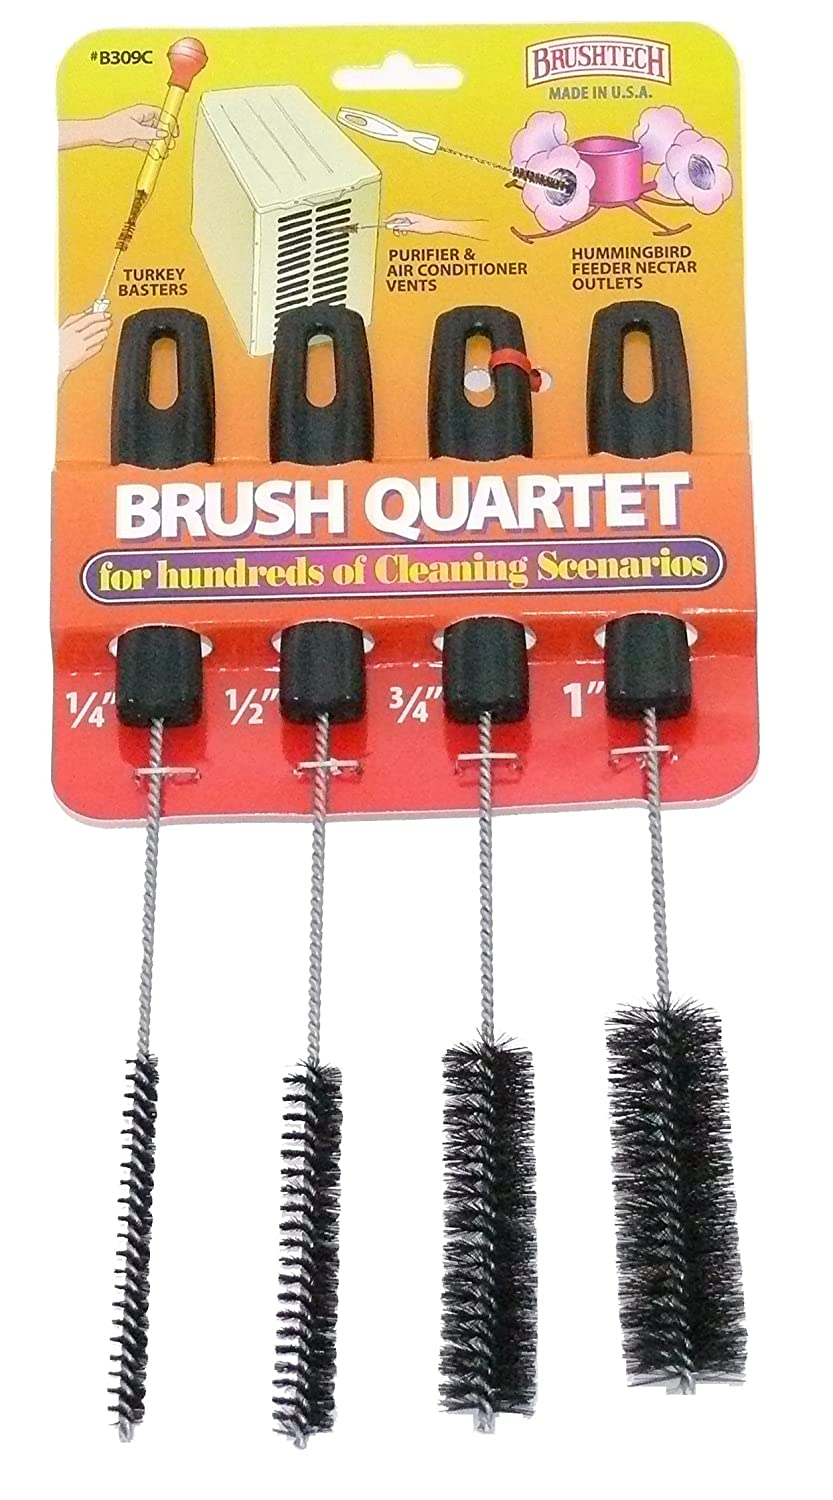 Brushtech Brush Quartet for Hundreds of Cleaning Scenarios B309C